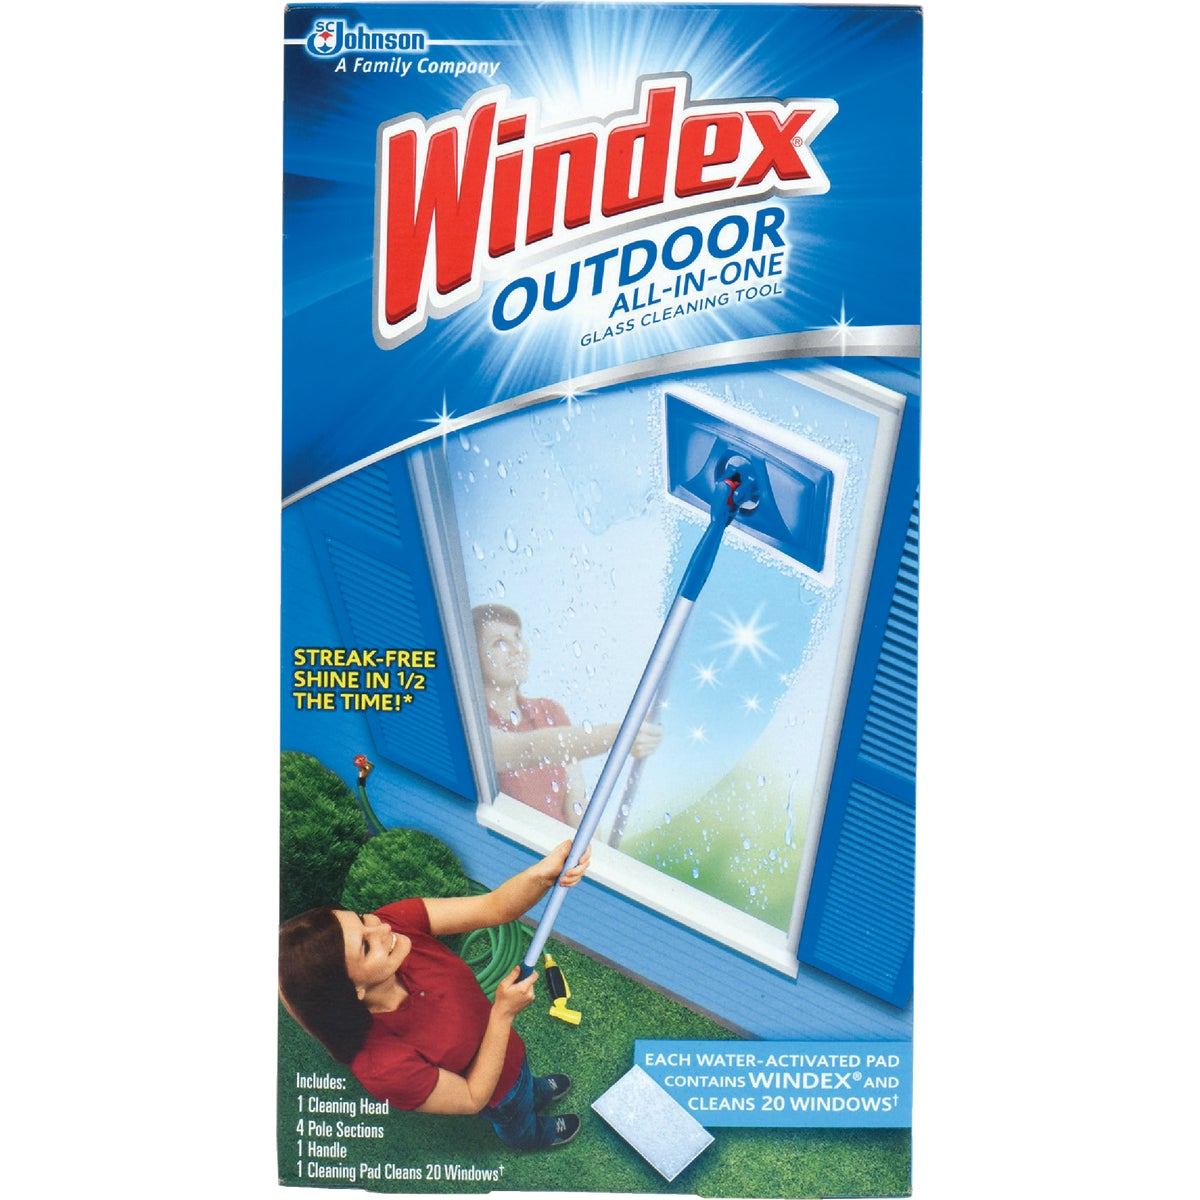 WINDEX OUTDR ALL-IN-ONE